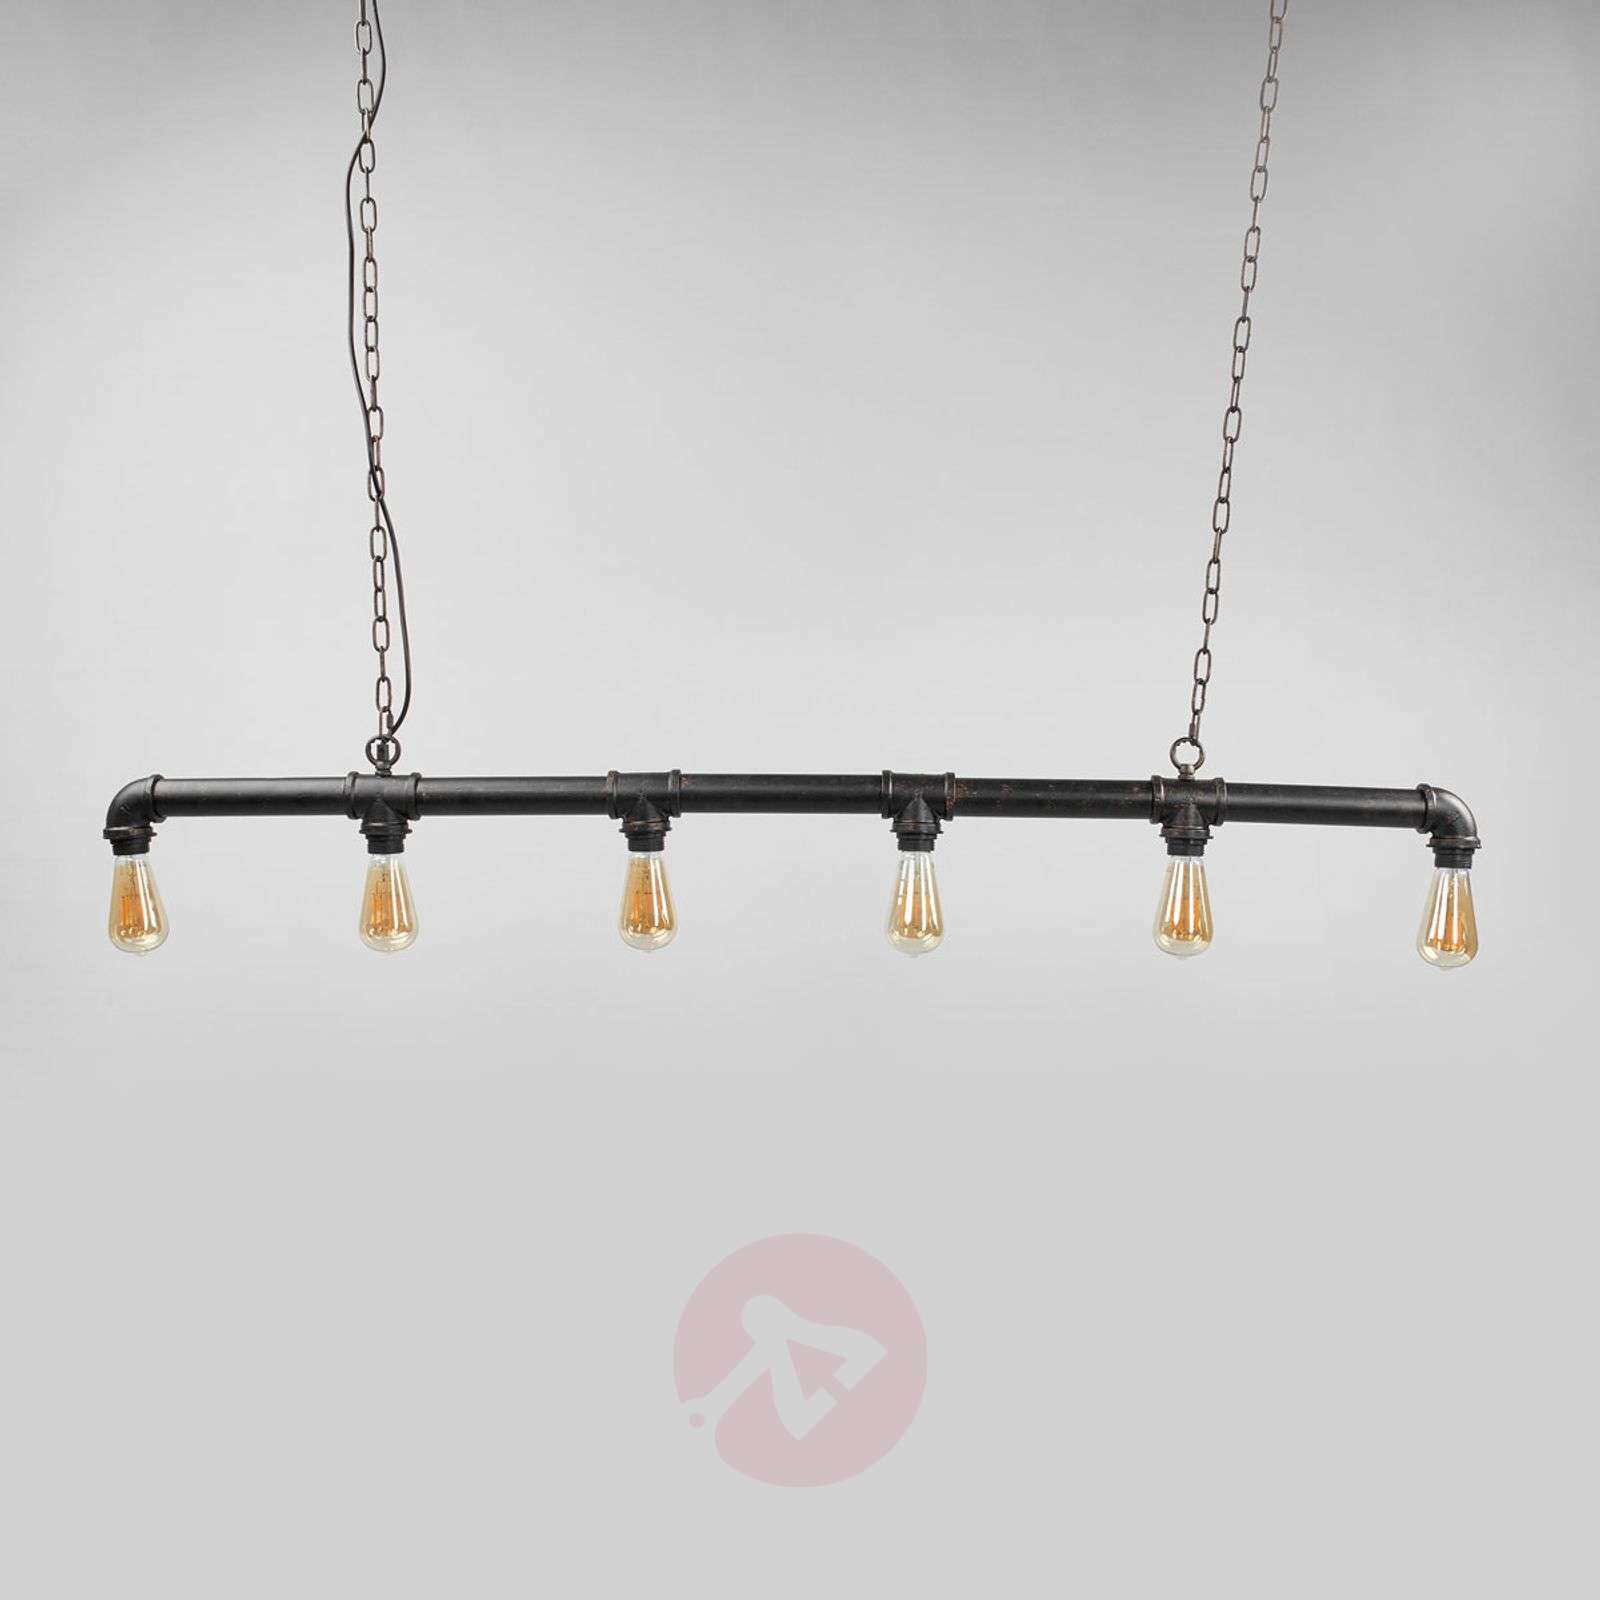 6-bulb Tap hanging light in water pipe form-9634051-02